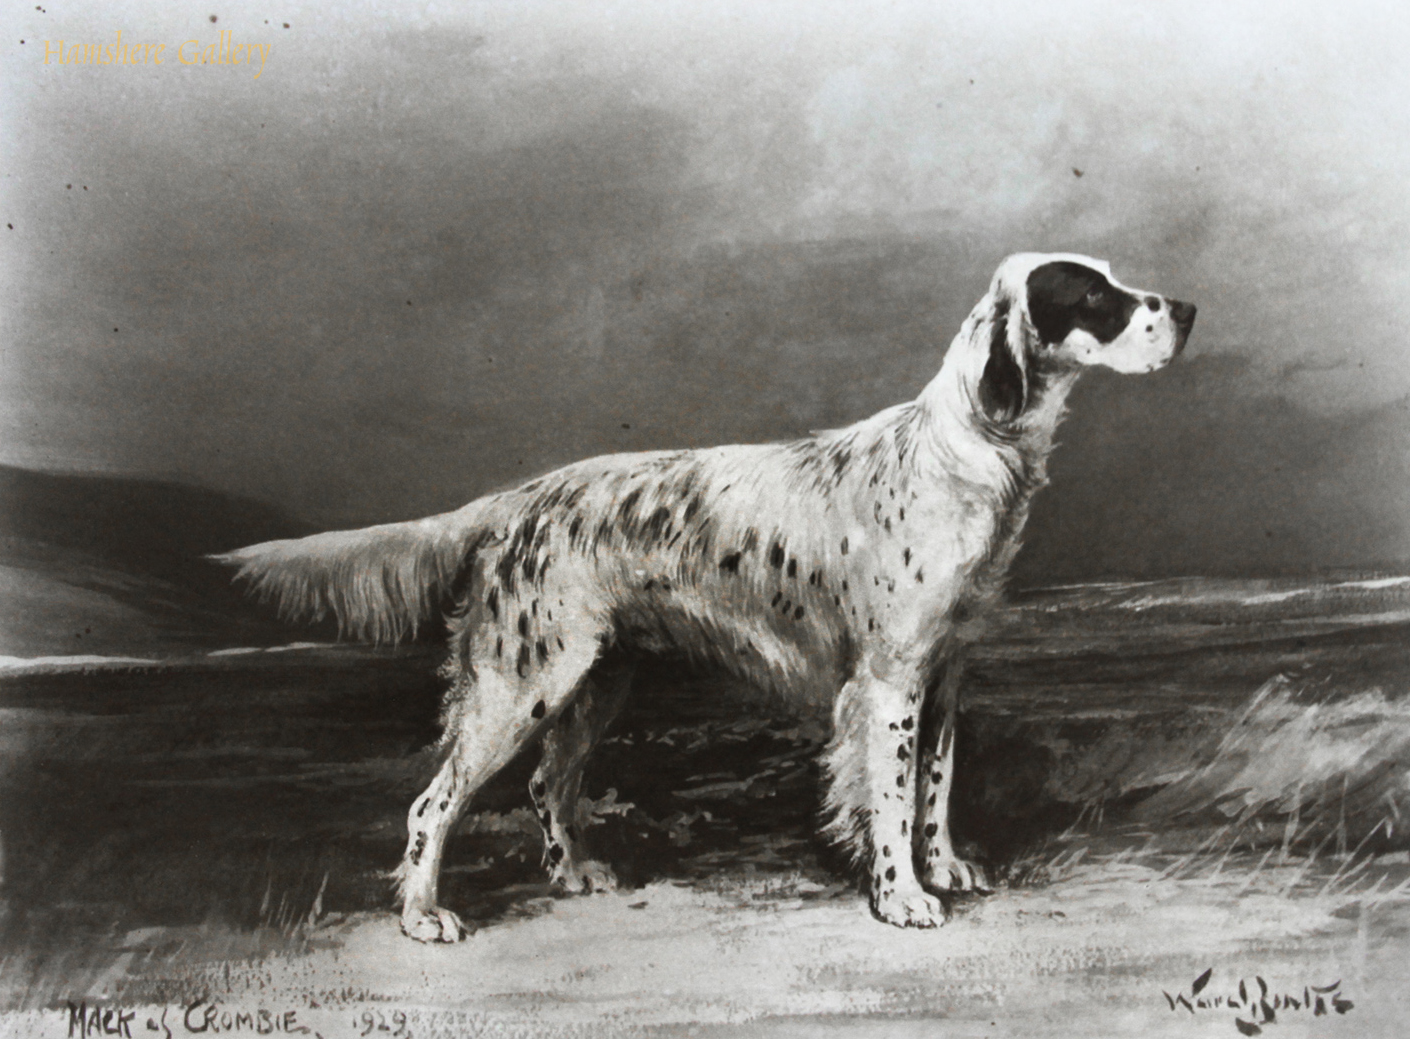 Click to see full size: Photograph of the English Setter �Mack of Crombie� after the painting by Reuben Ward Binks (English, 1880-1950)